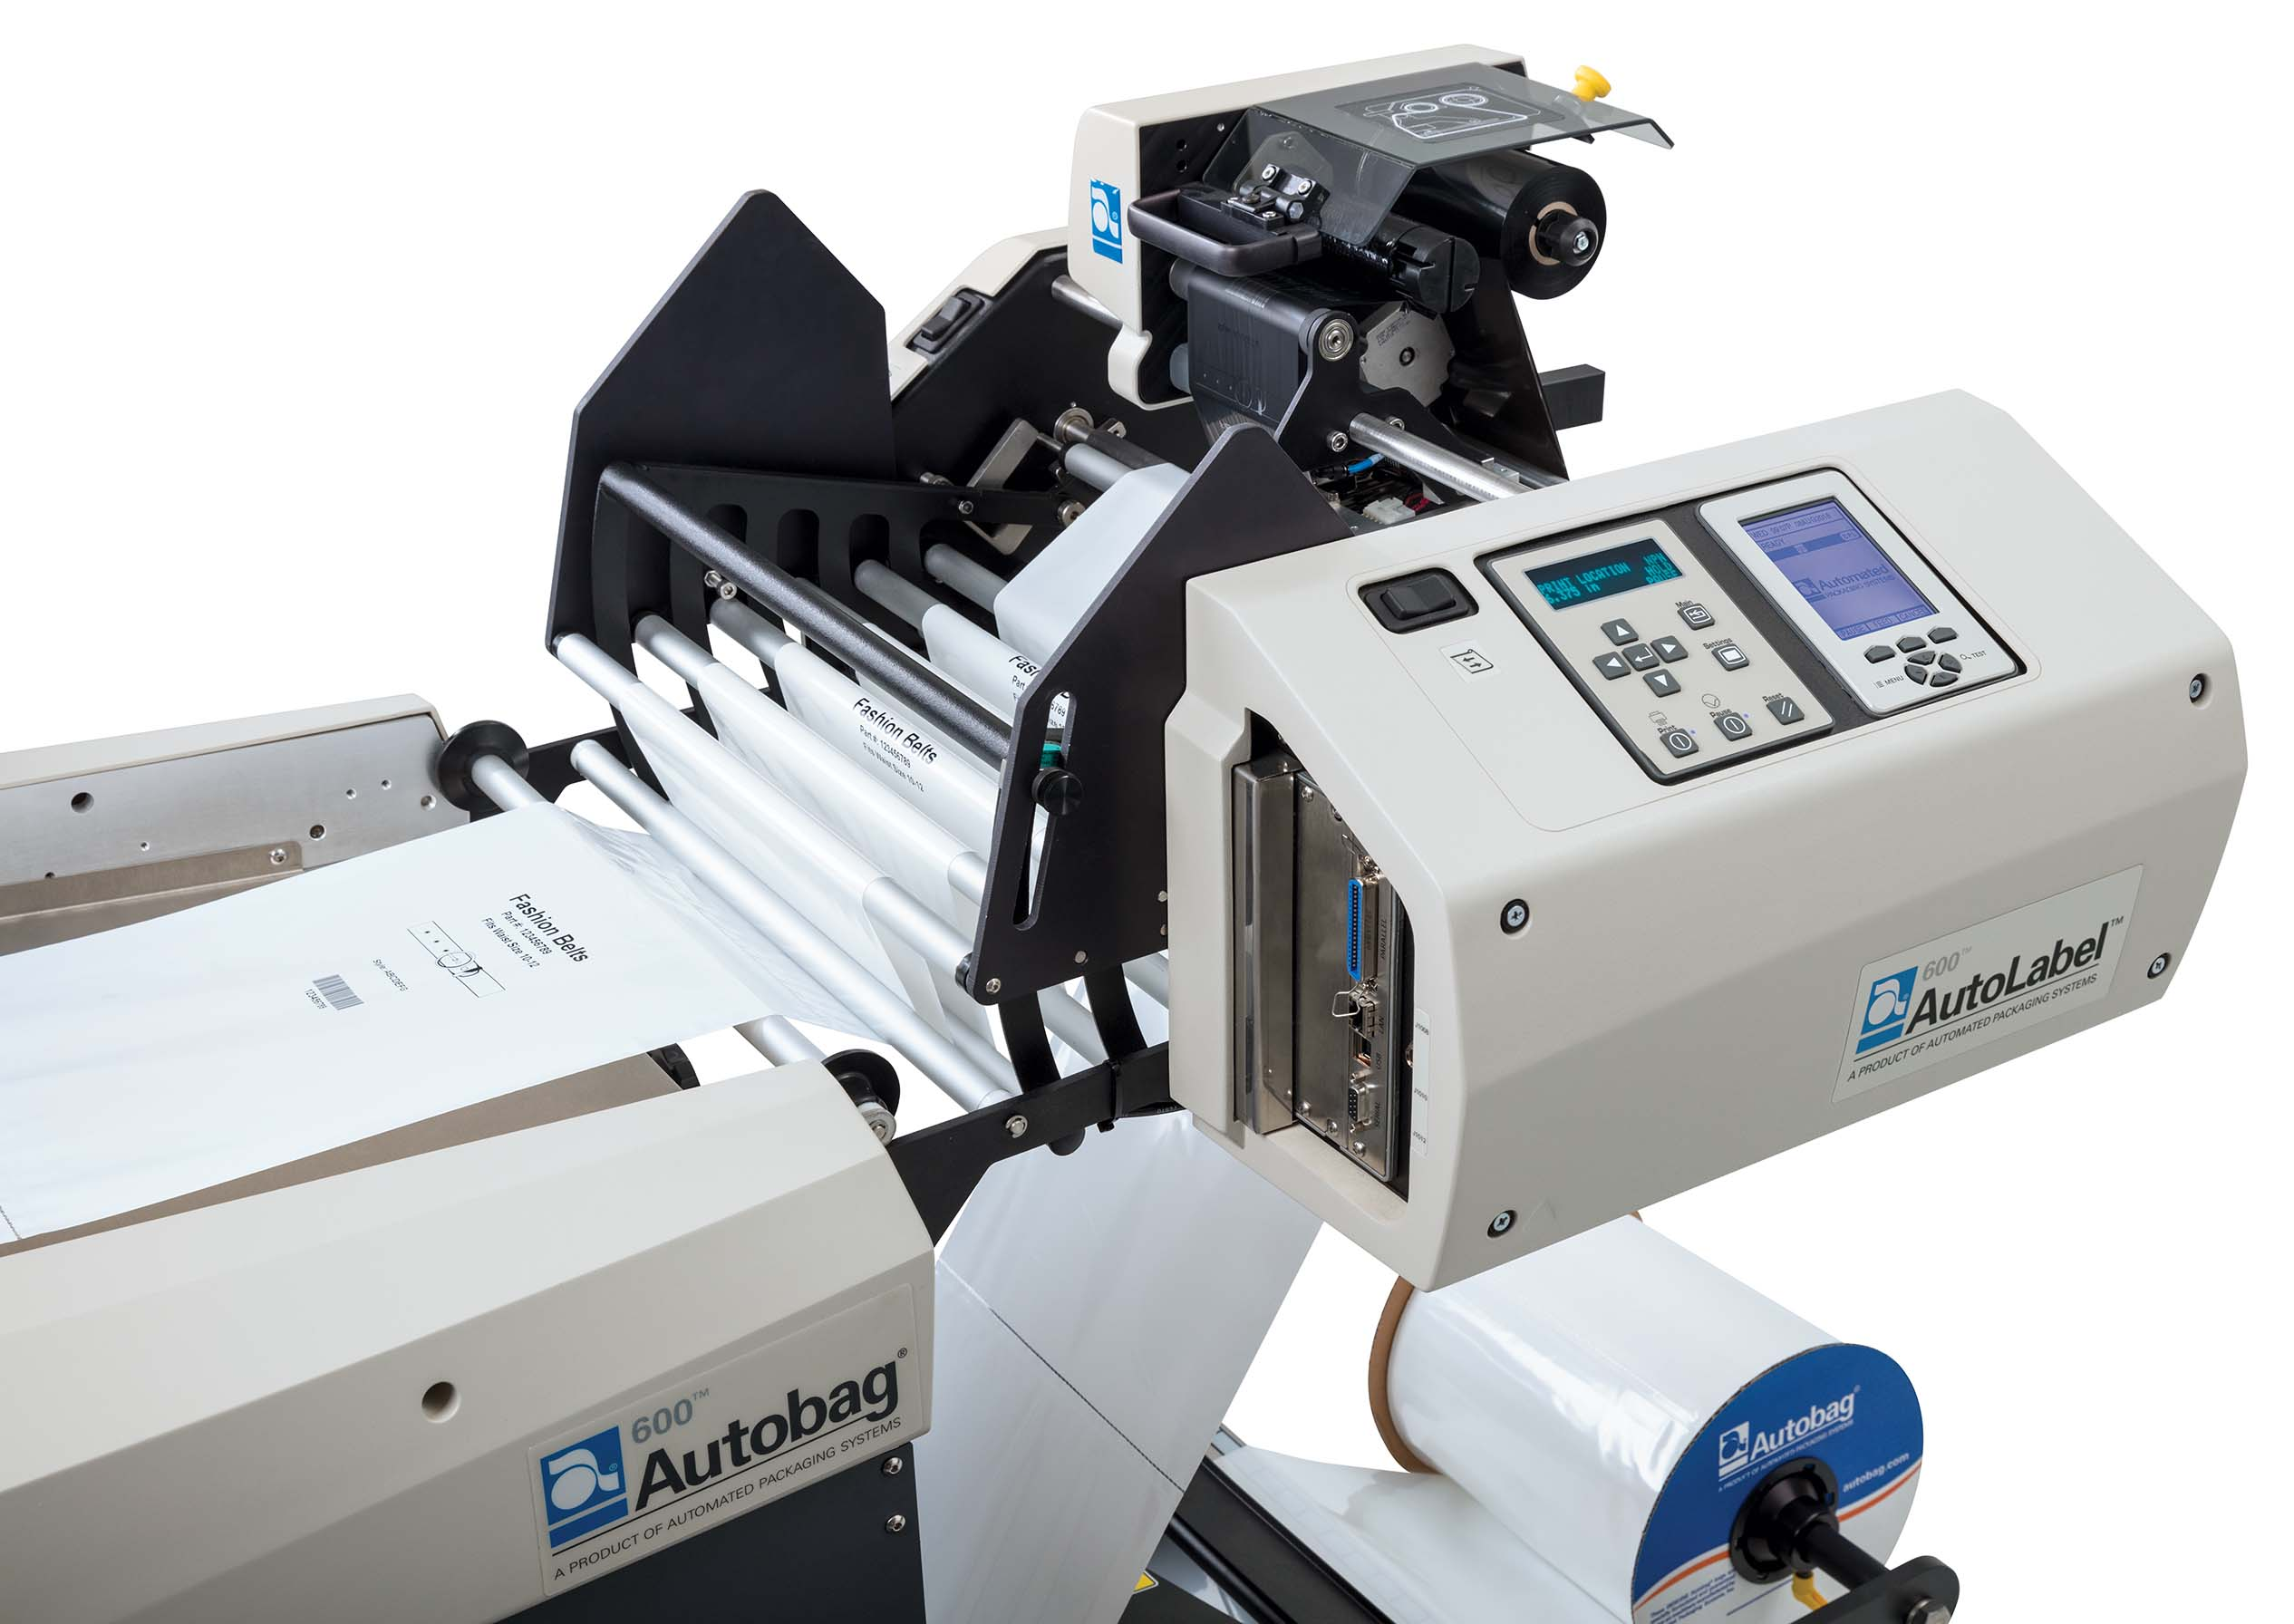 AutoLabel 600 Wide Thermal Transfer Printer